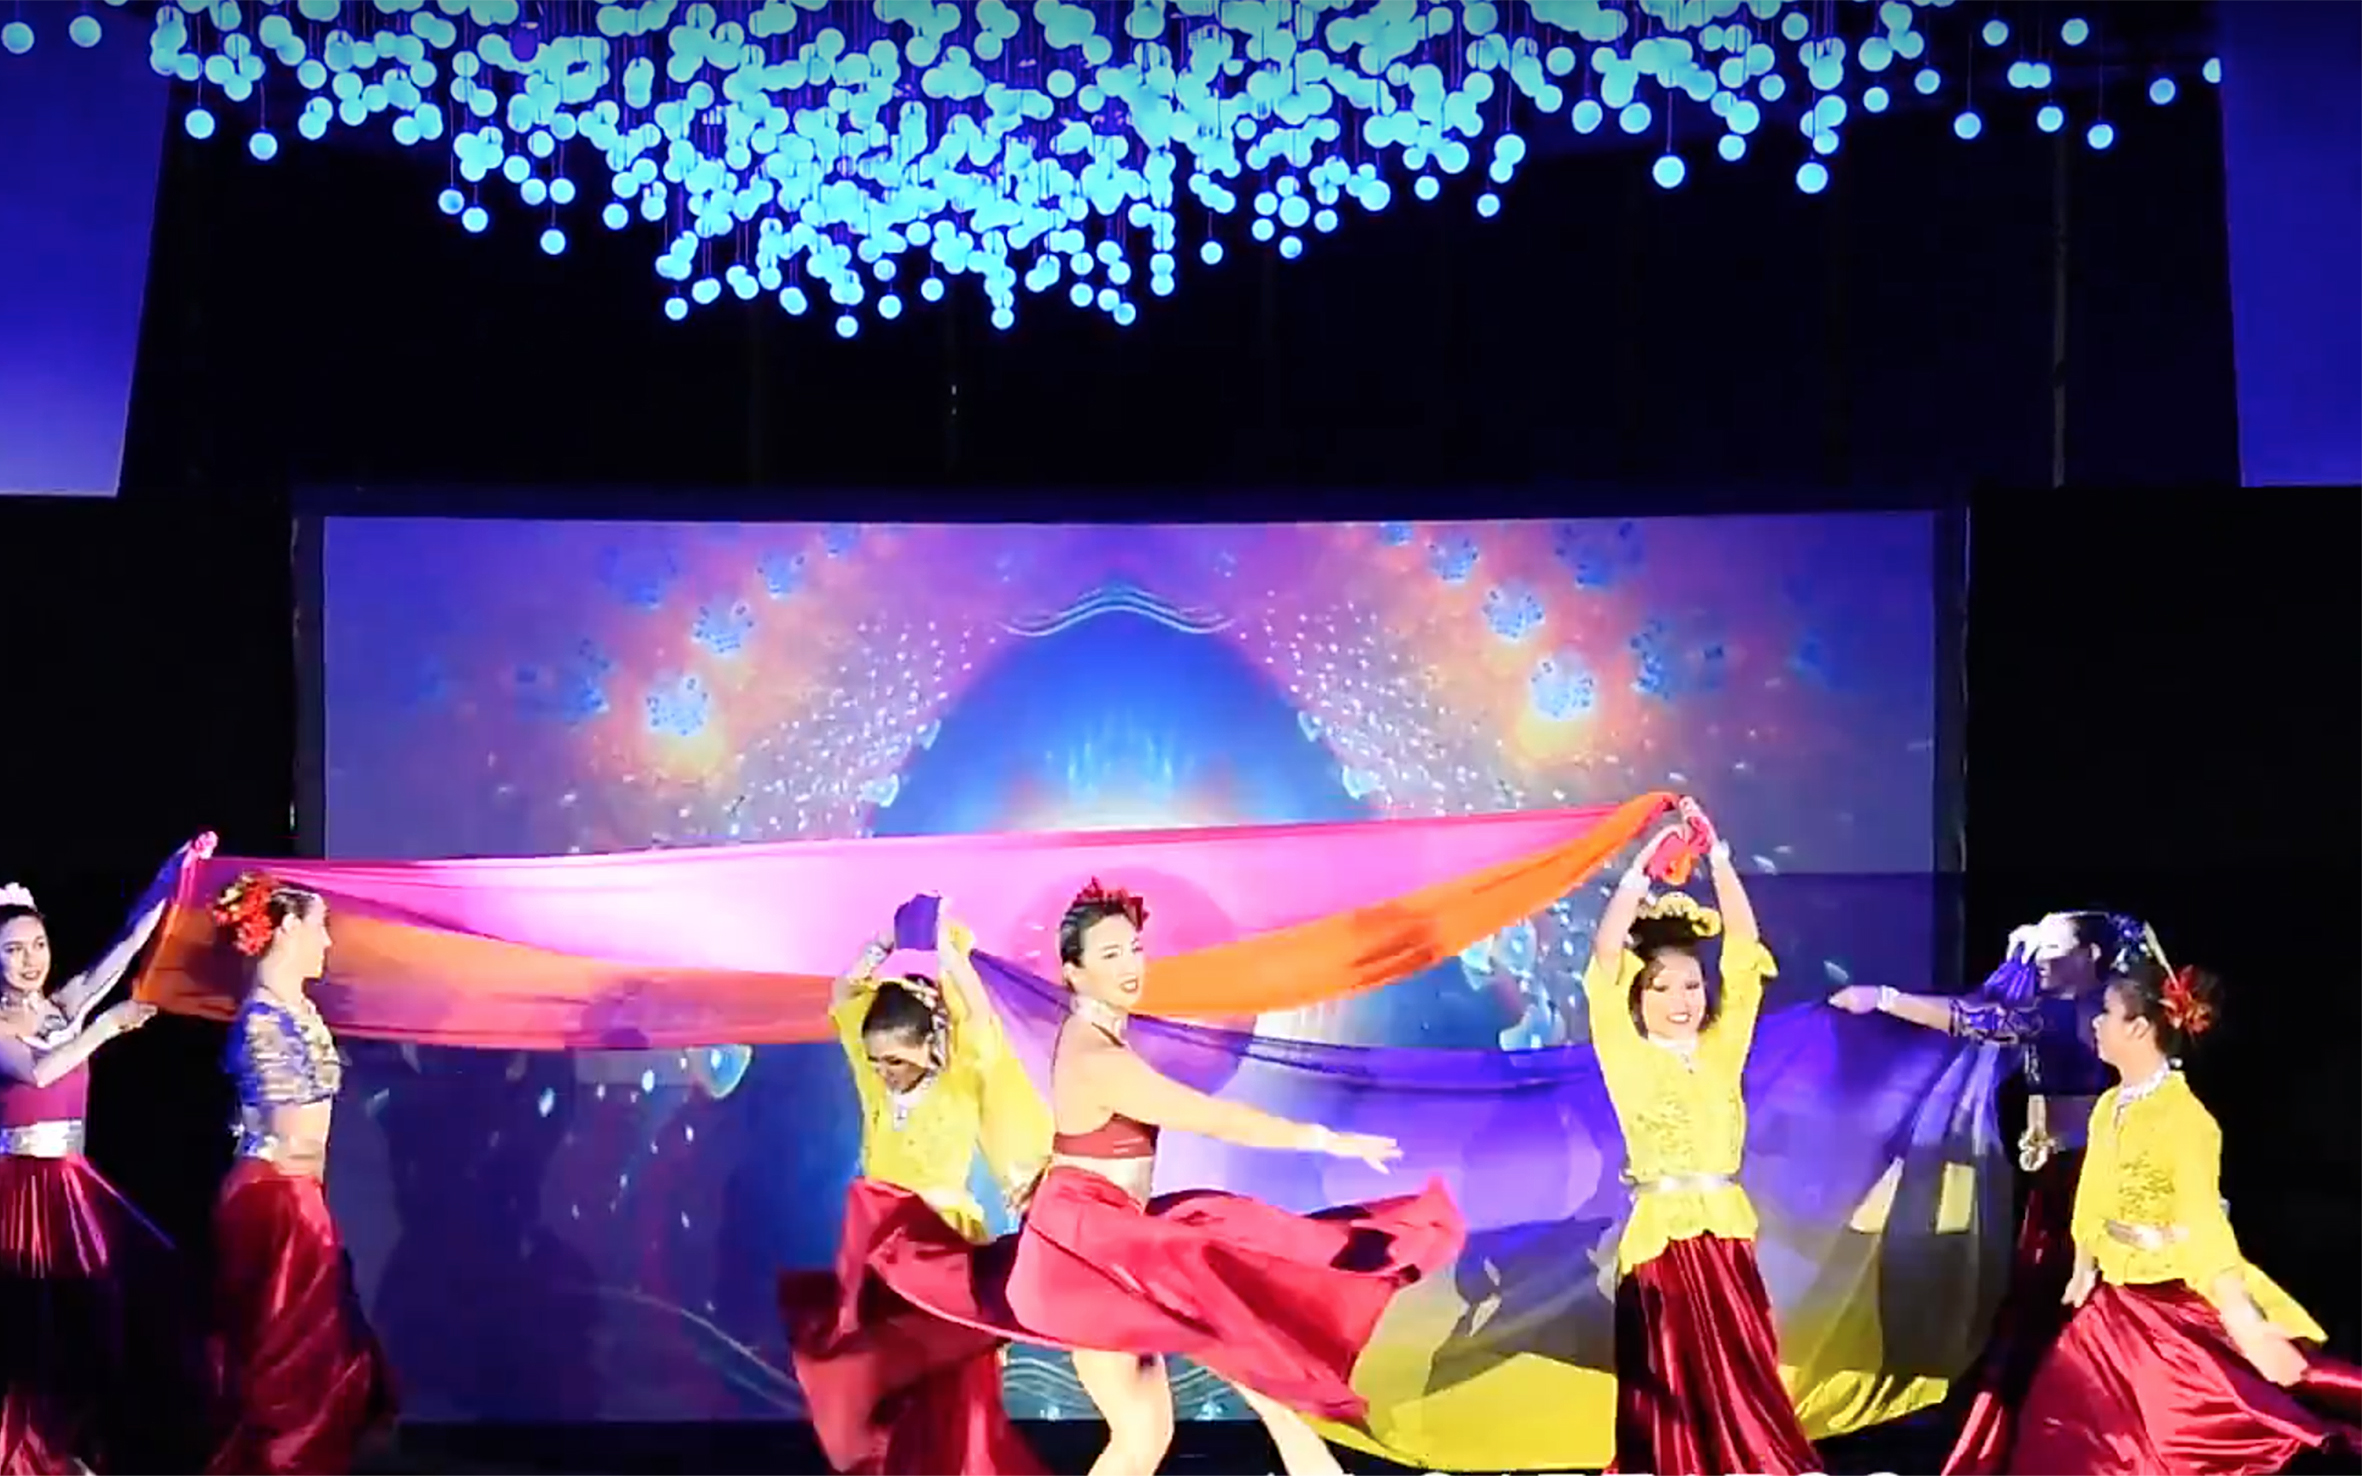 902.Traditional Dance / Singapore - Traditional Dance in Singapore can be described as multicultural. Singapore is a multinational country, so the range of dance reflects its cultural diversity. For a young nation with a diverse immigrant population, the issue of